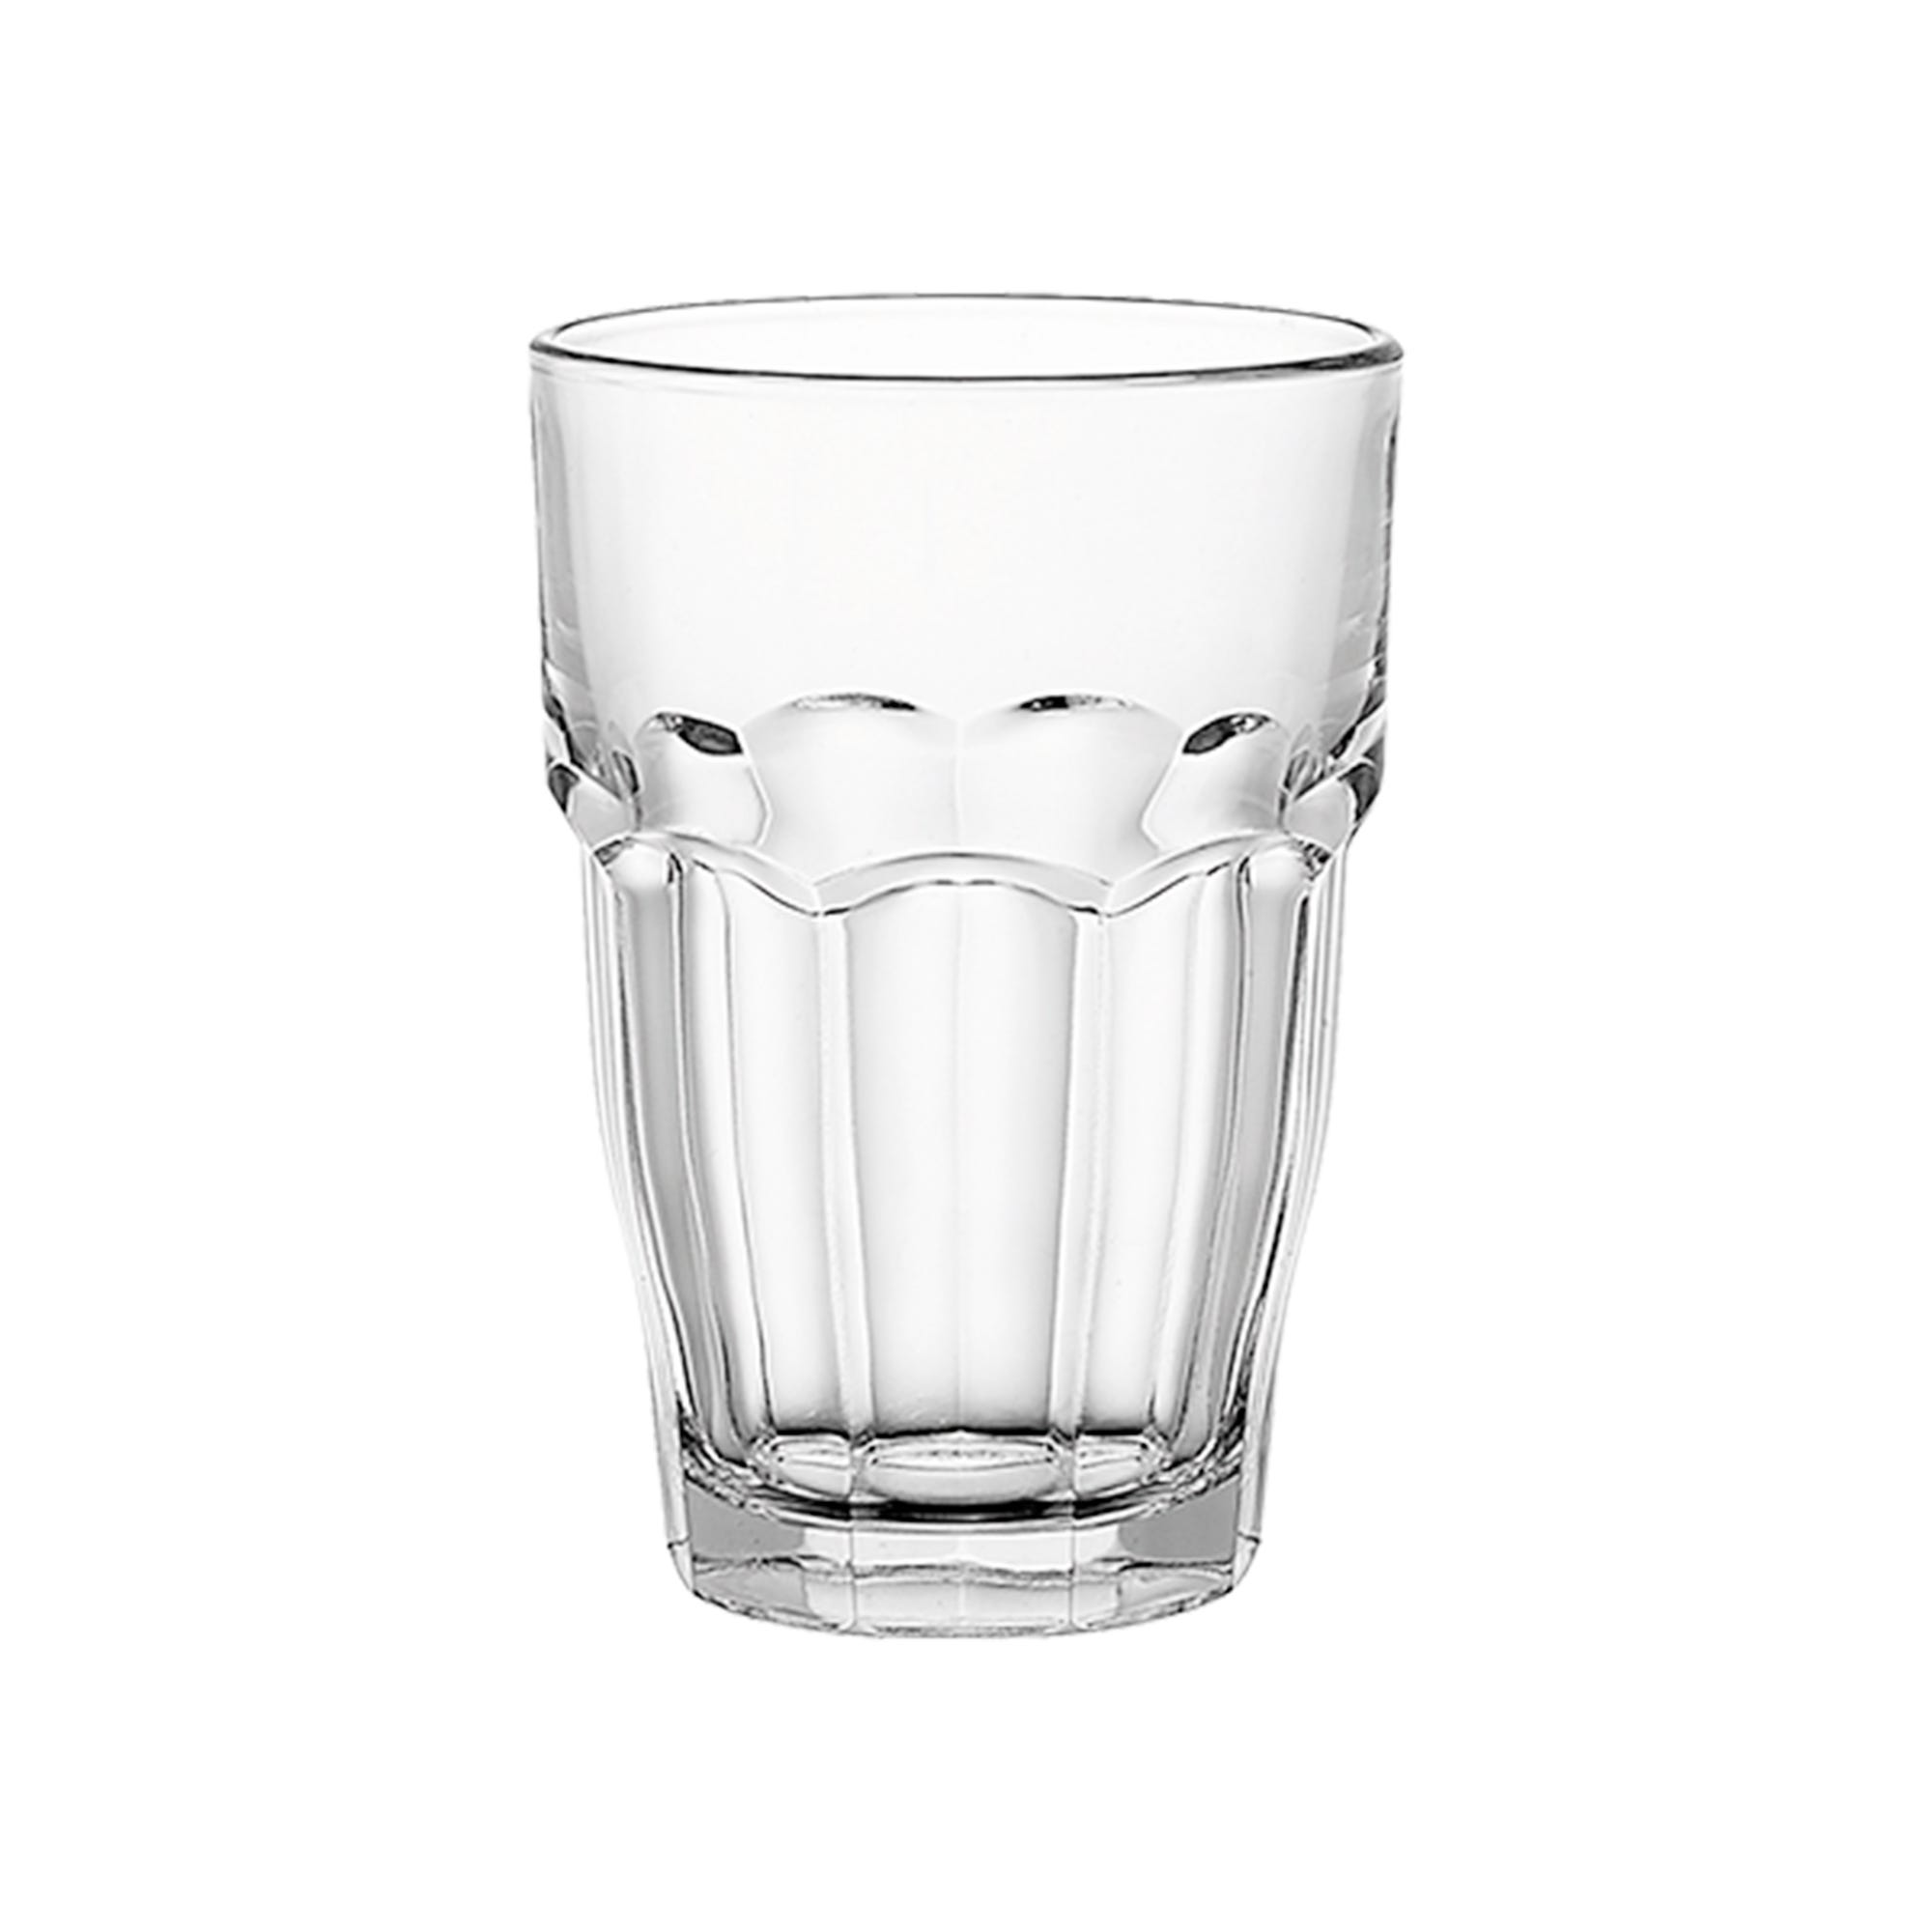 Vaso de vidrio Long Drink de 370 mL